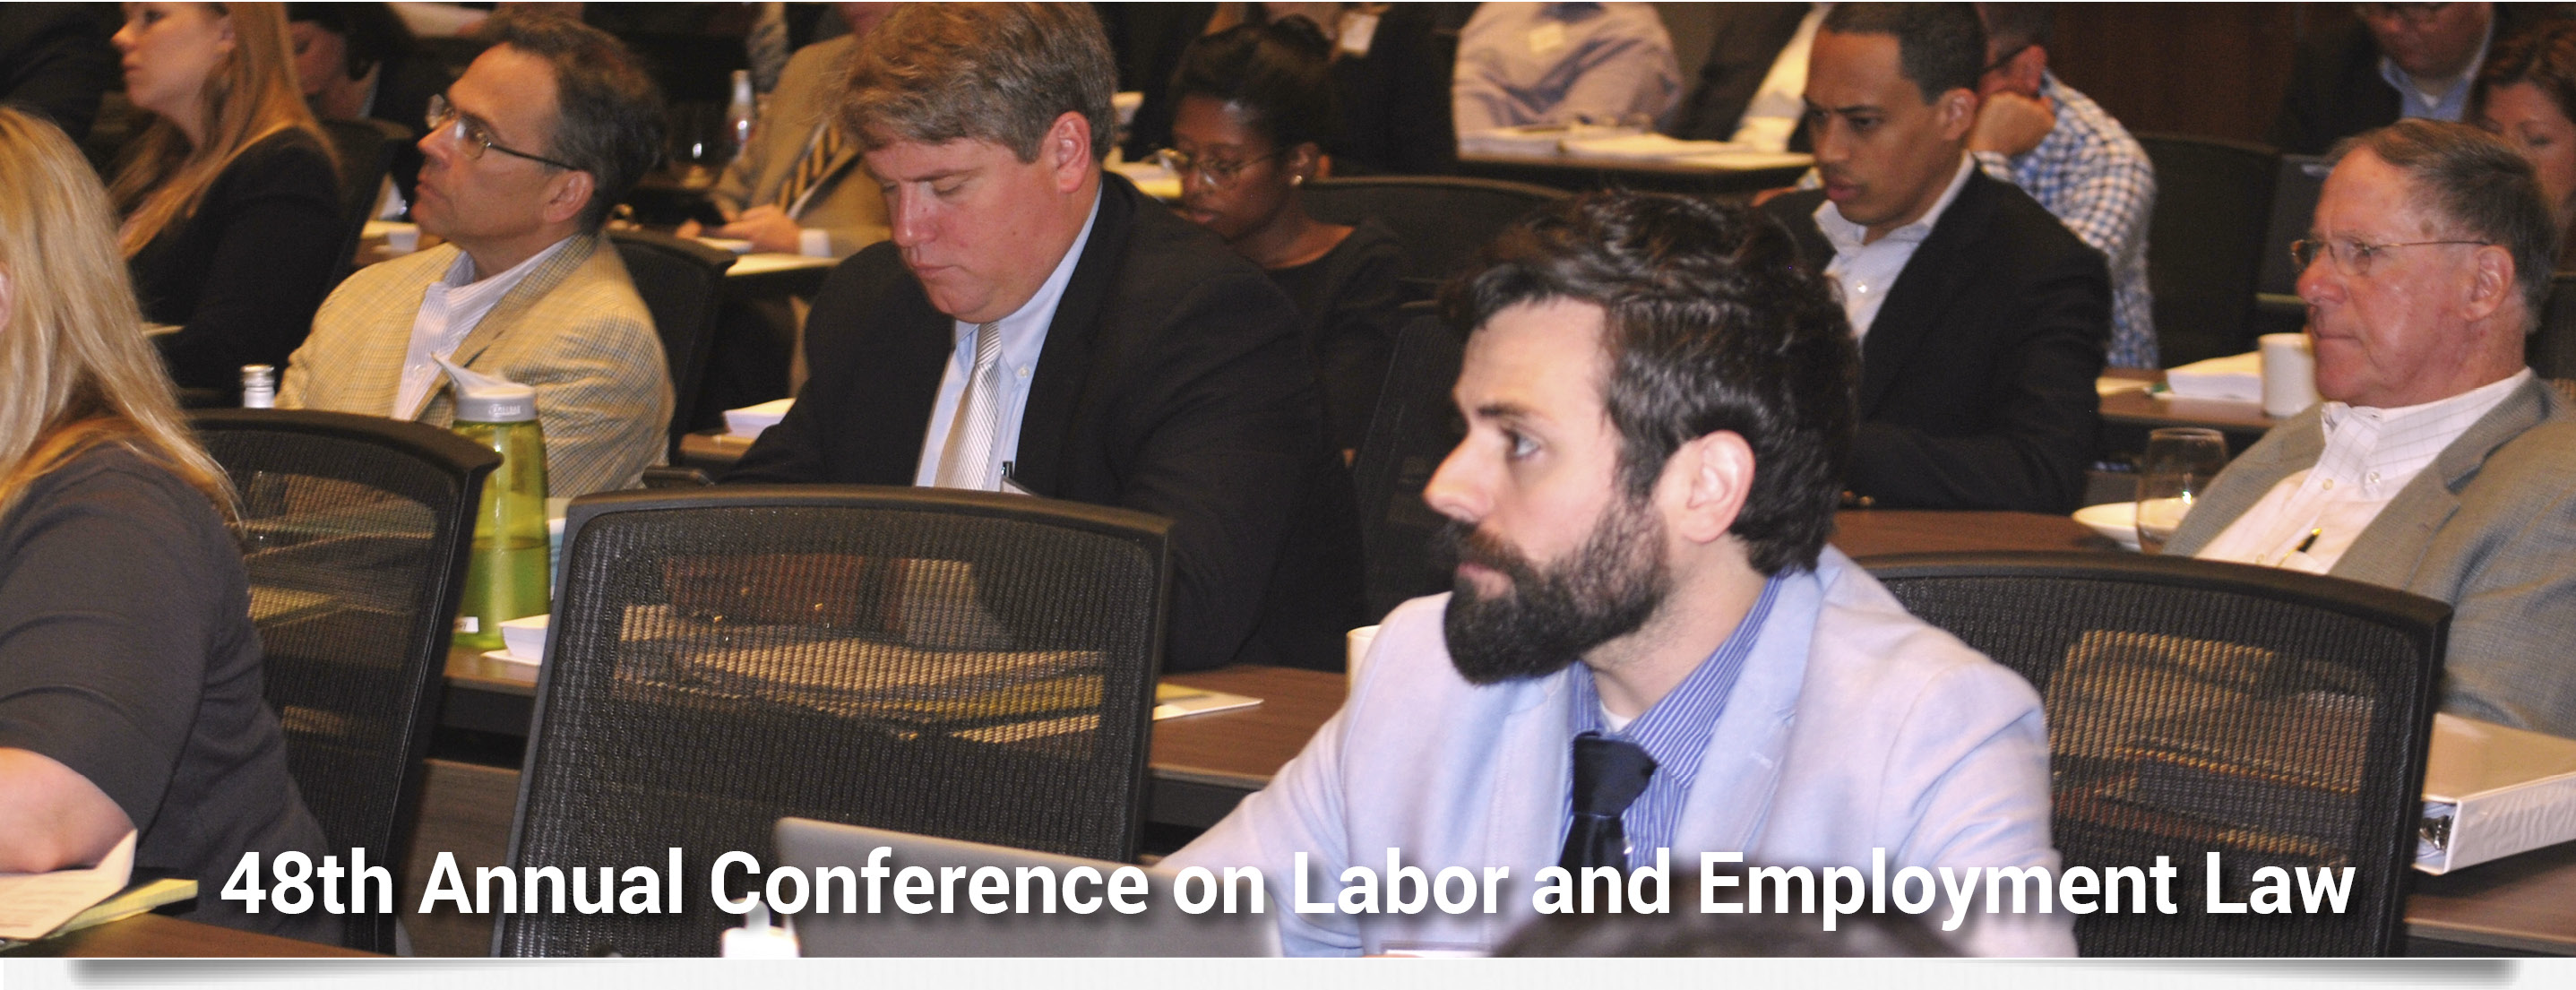 48th Annual Conference on Labor Relations and Employment Law; book rooms by Aug. 30